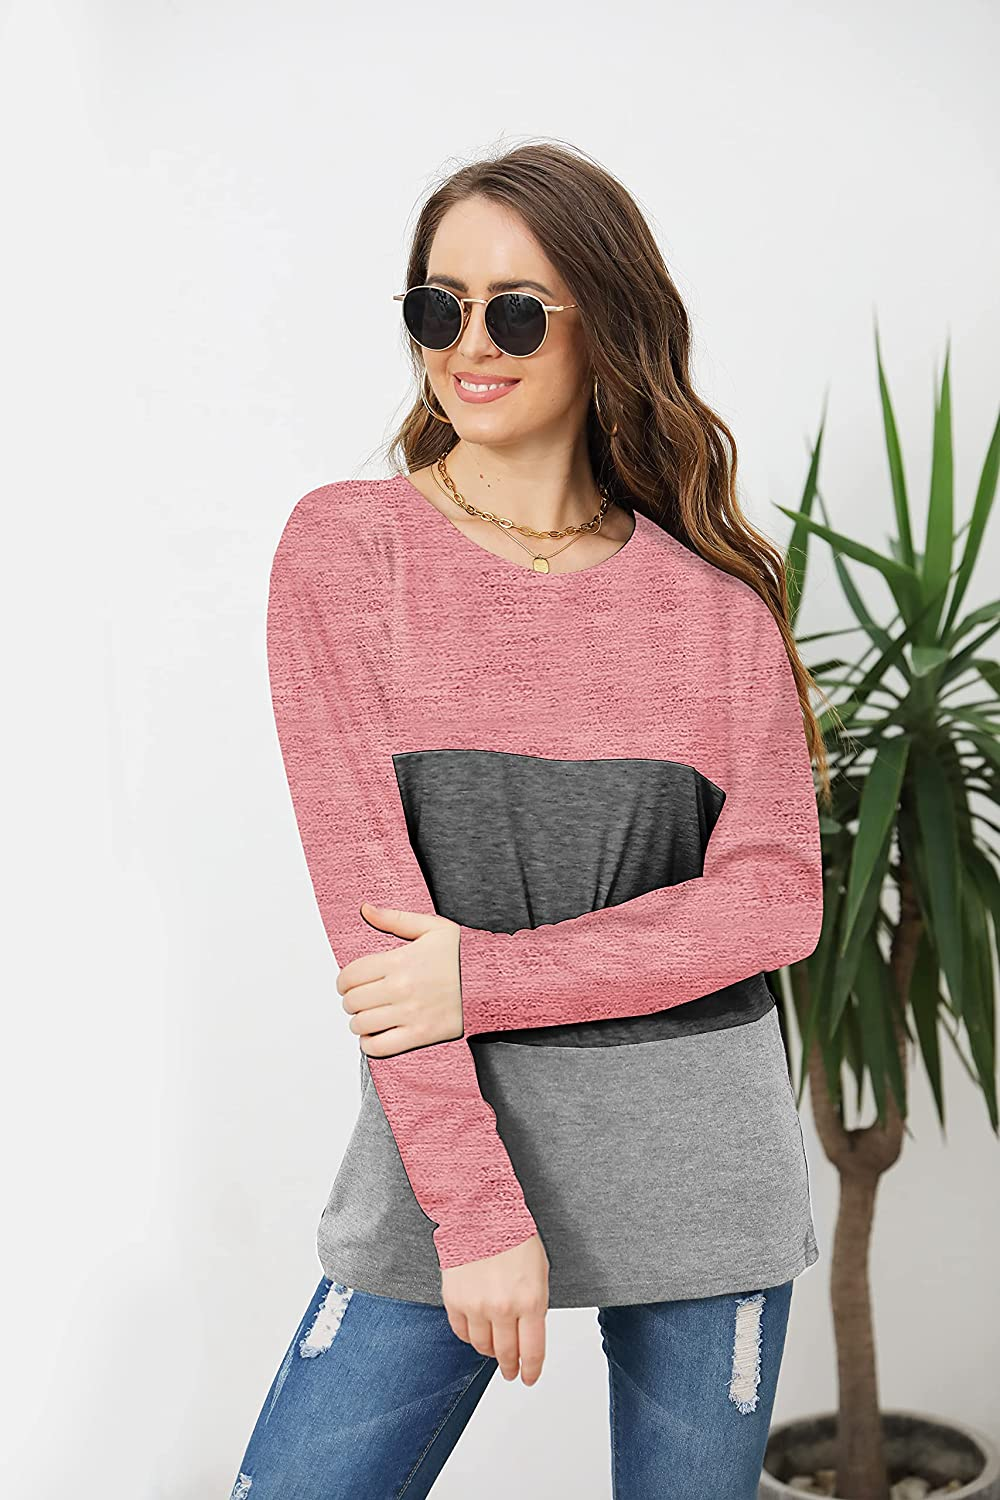 Womens Long Sleeve Graphic Print Shirt Loose Fit Color Block Tunic Tops Sweatshirts Blouses